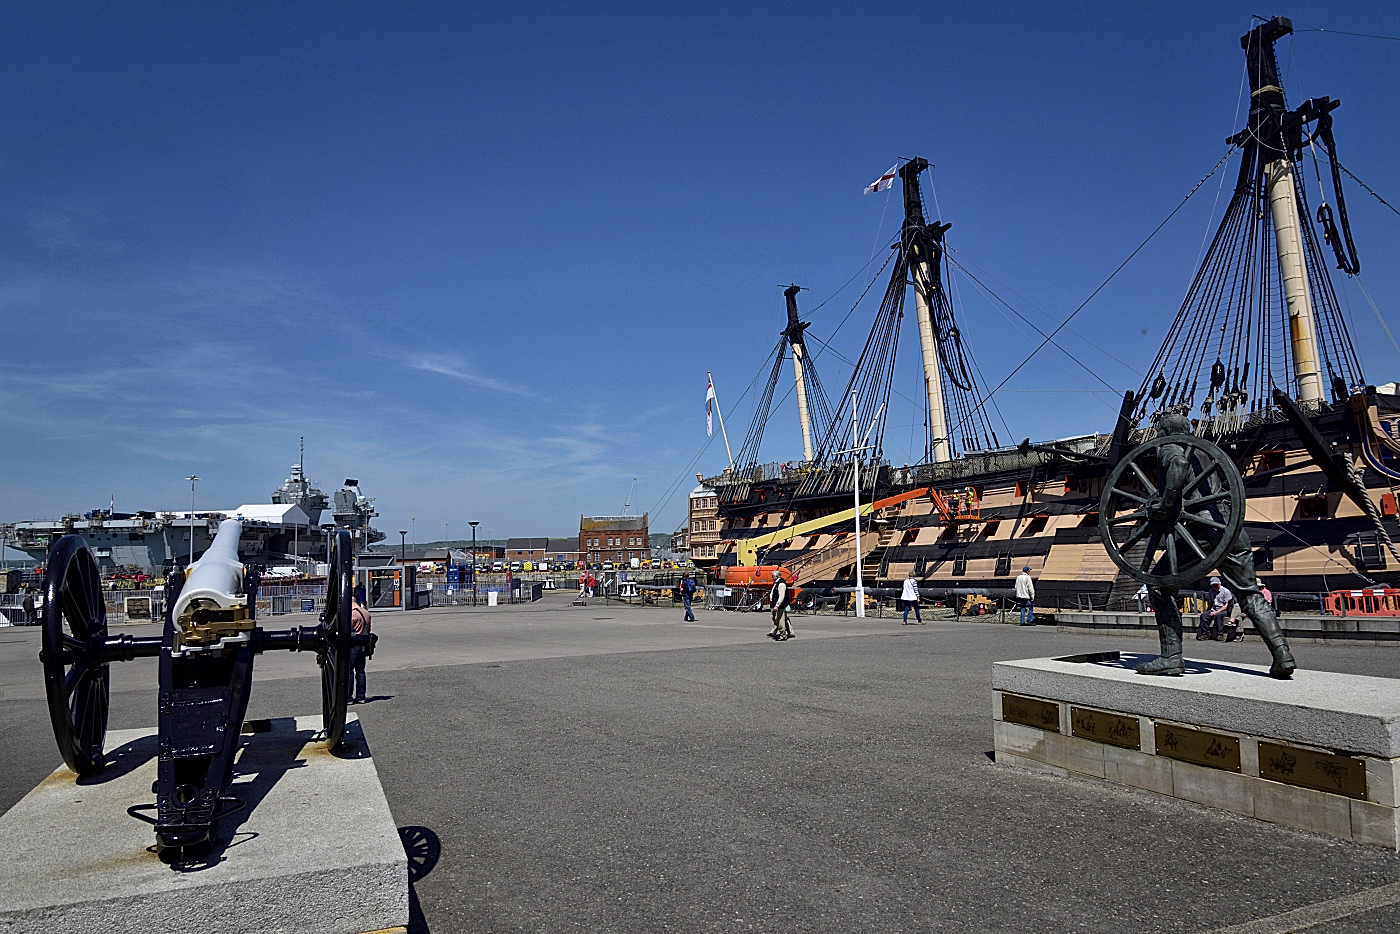 HMS Victory & Royal Dockyards